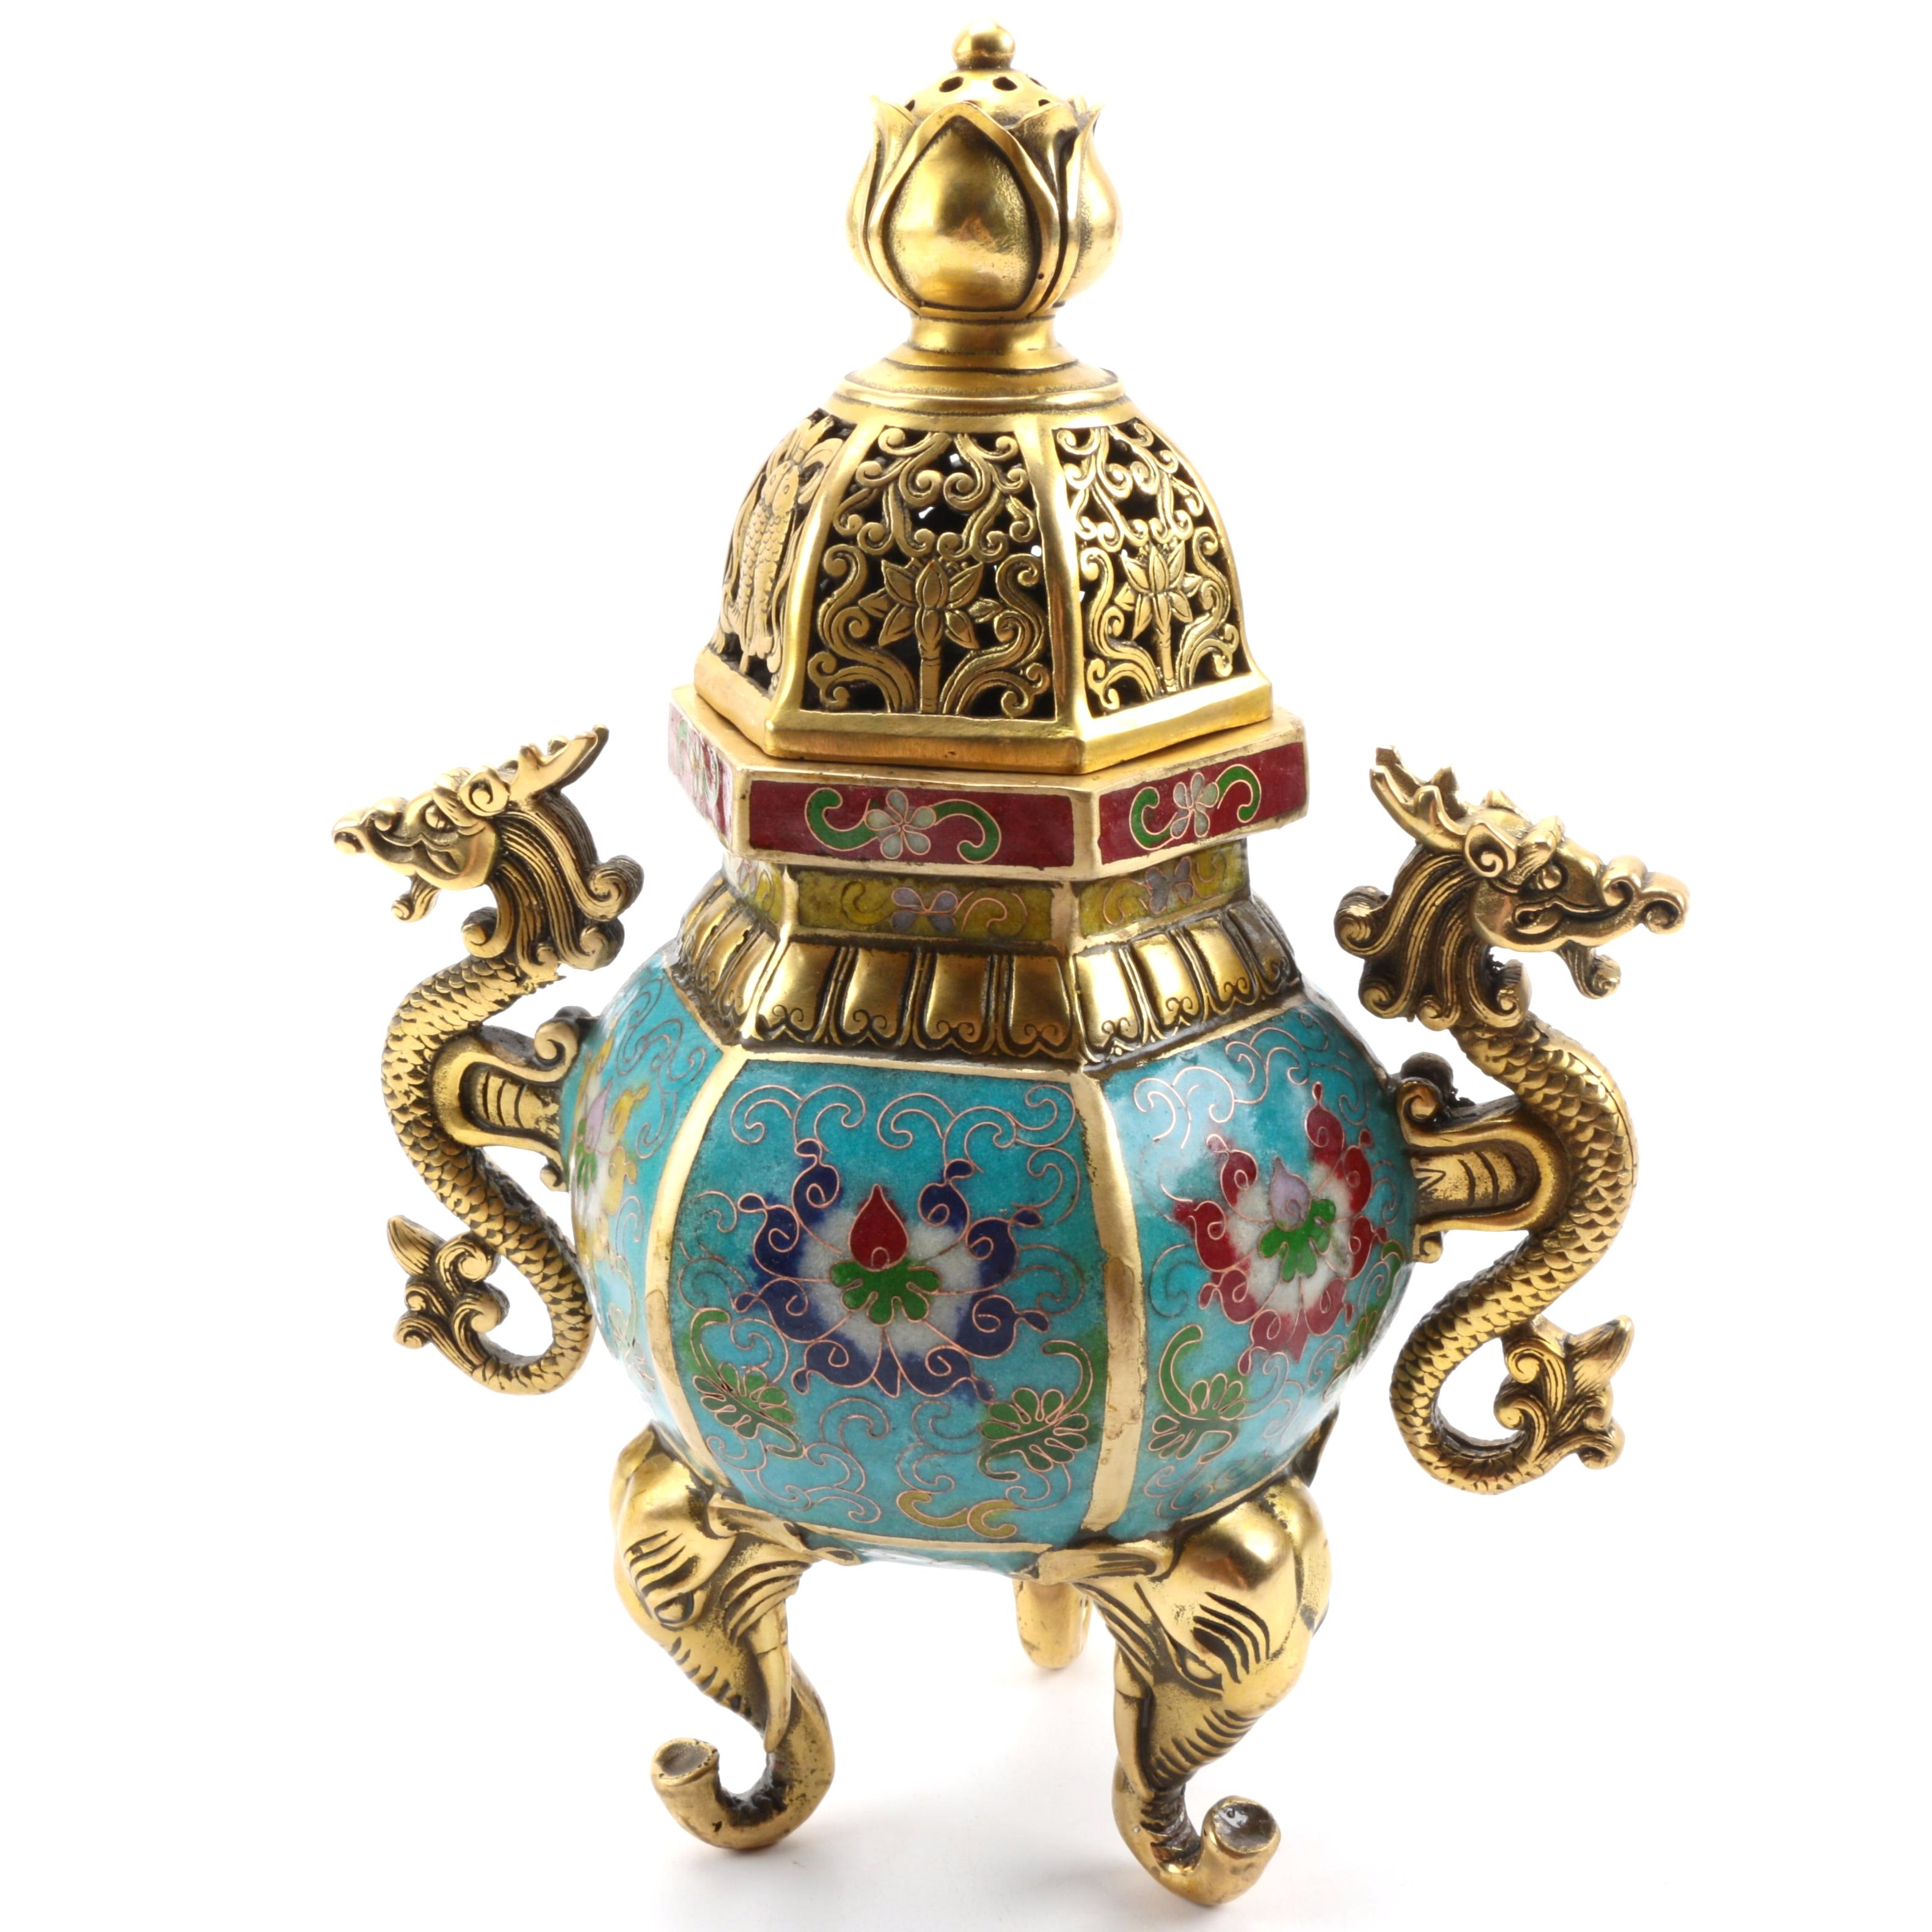 Brass and Cloisonne Figural Incense Burner